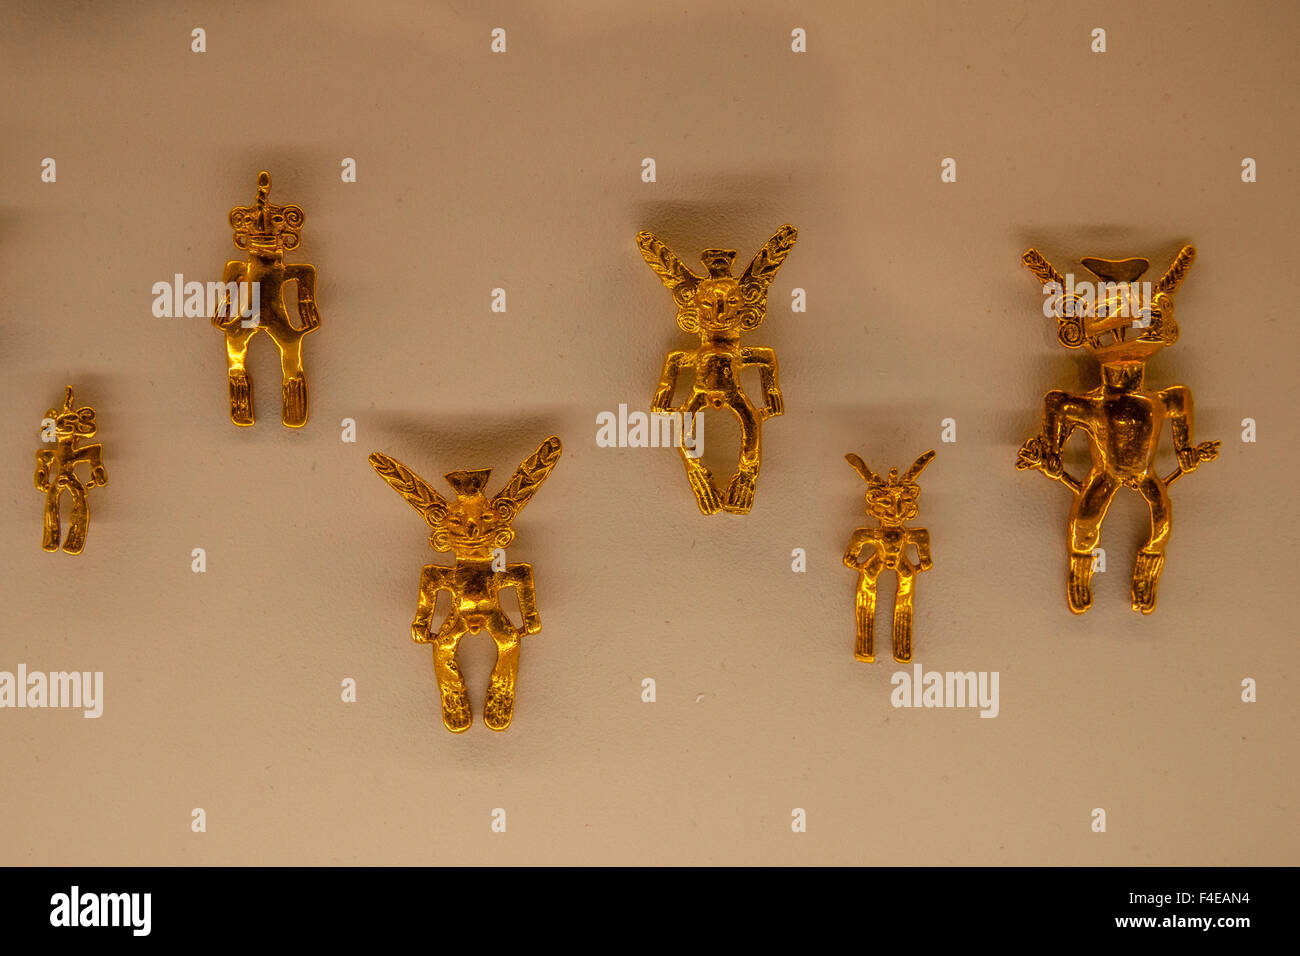 Pre columbian gold pendants old traditional pieces dating back to pre columbian gold pendants old traditional pieces dating back to 500ad the gold museum san jose costa rica central america mozeypictures Gallery